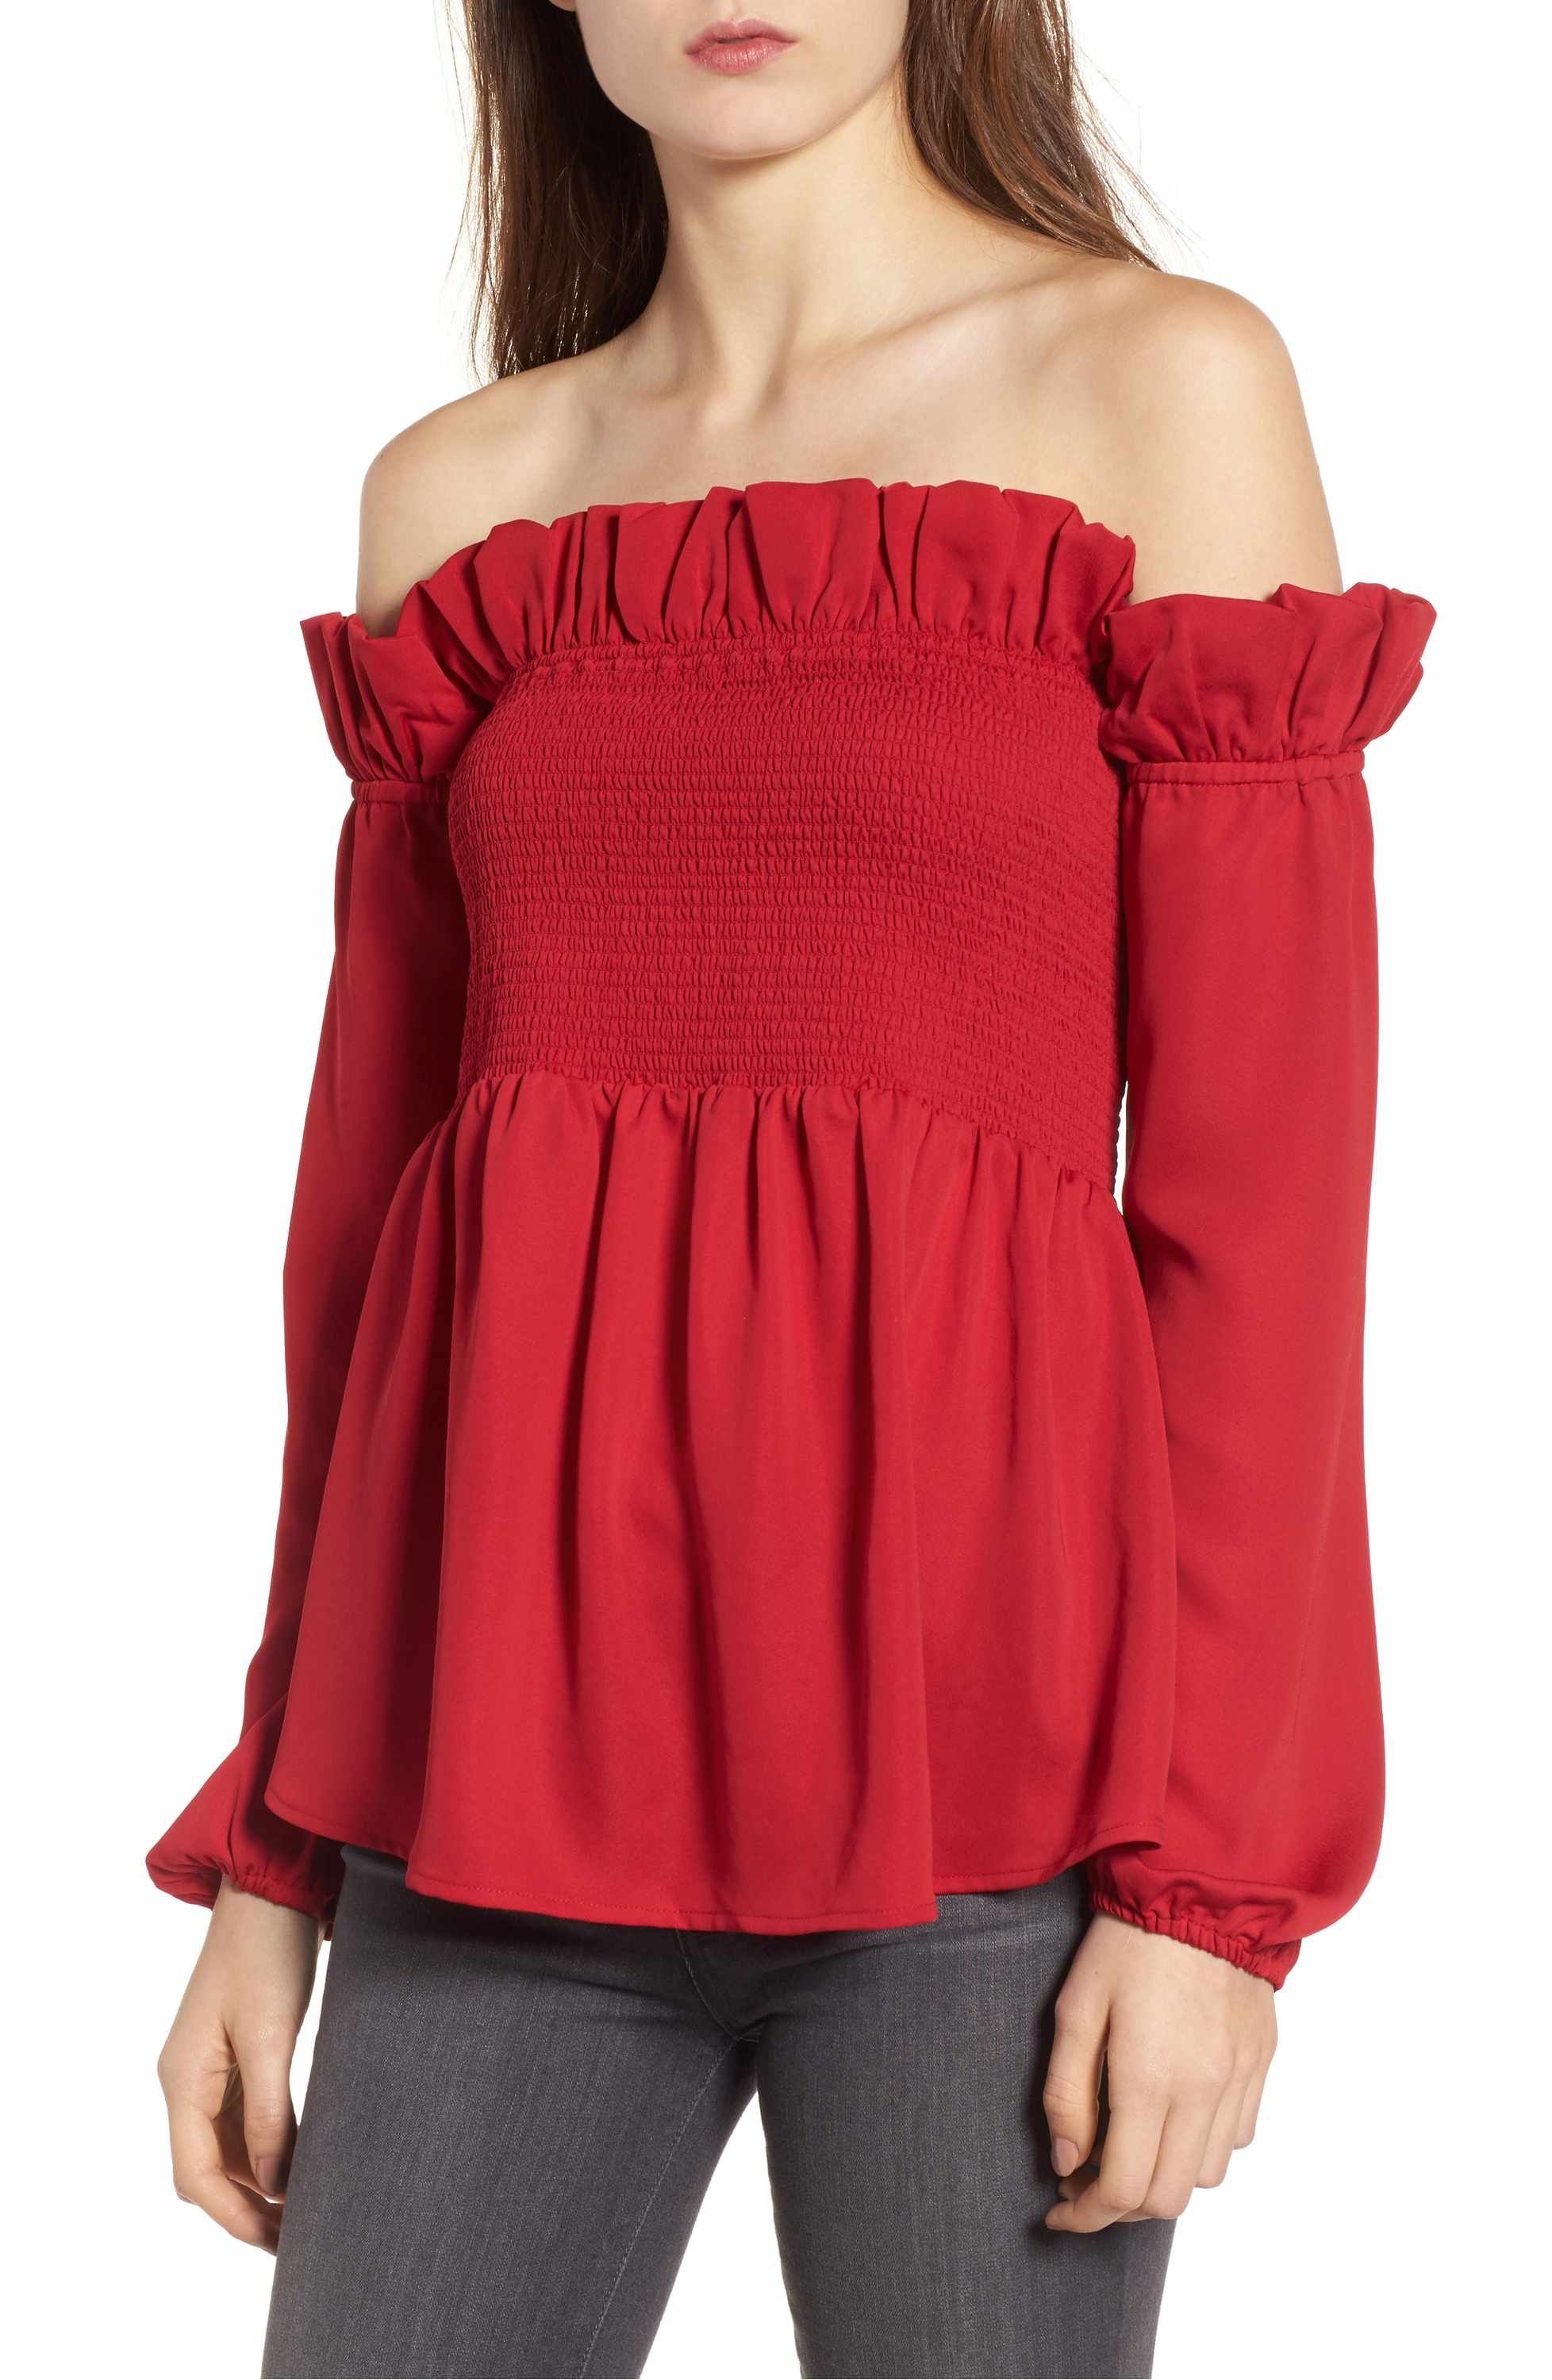 9c7dff6adc041c Main Image - Chelsea28 Smocked Top. Main Image - Chelsea28 Smocked Top Off  Shoulder Blouse ...